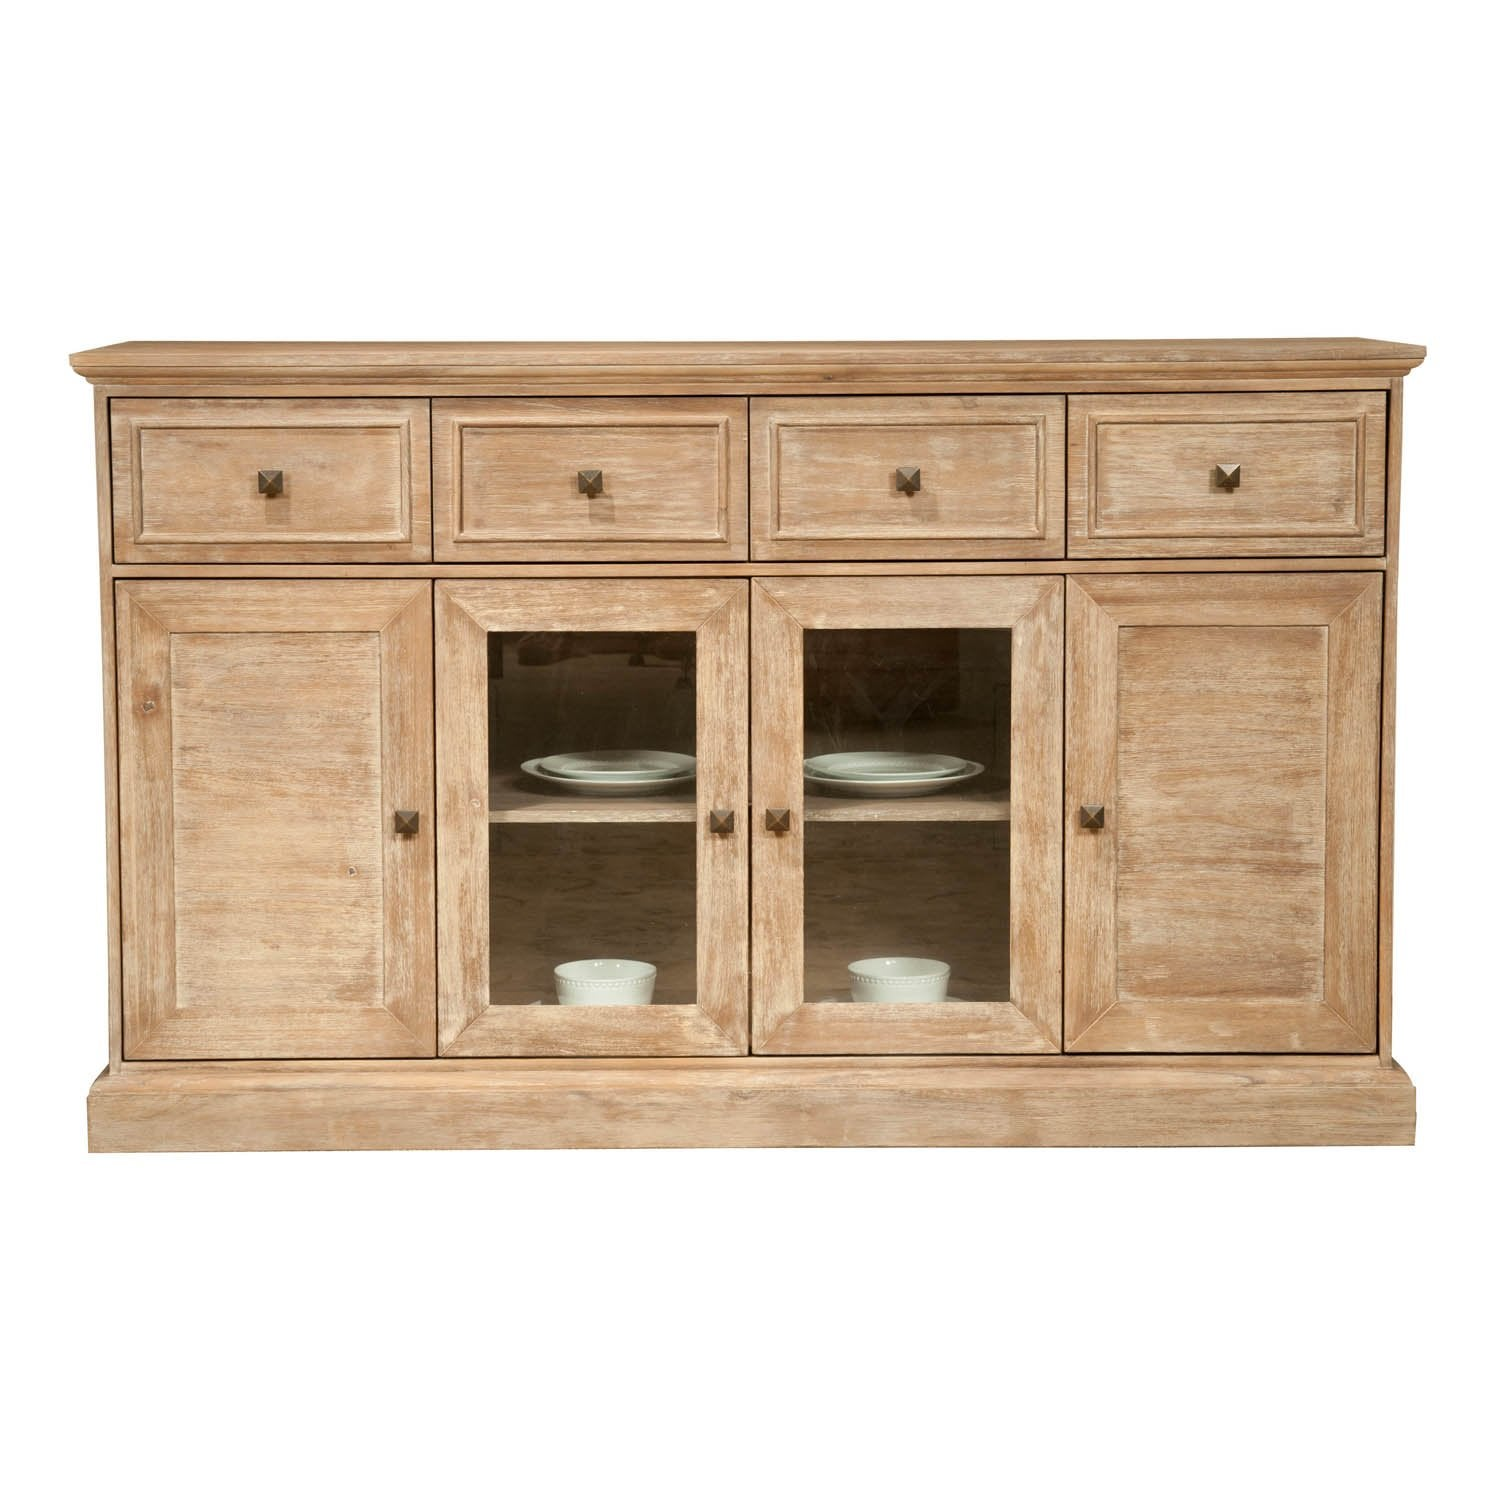 Hudson Media Sideboard in Stone Wash